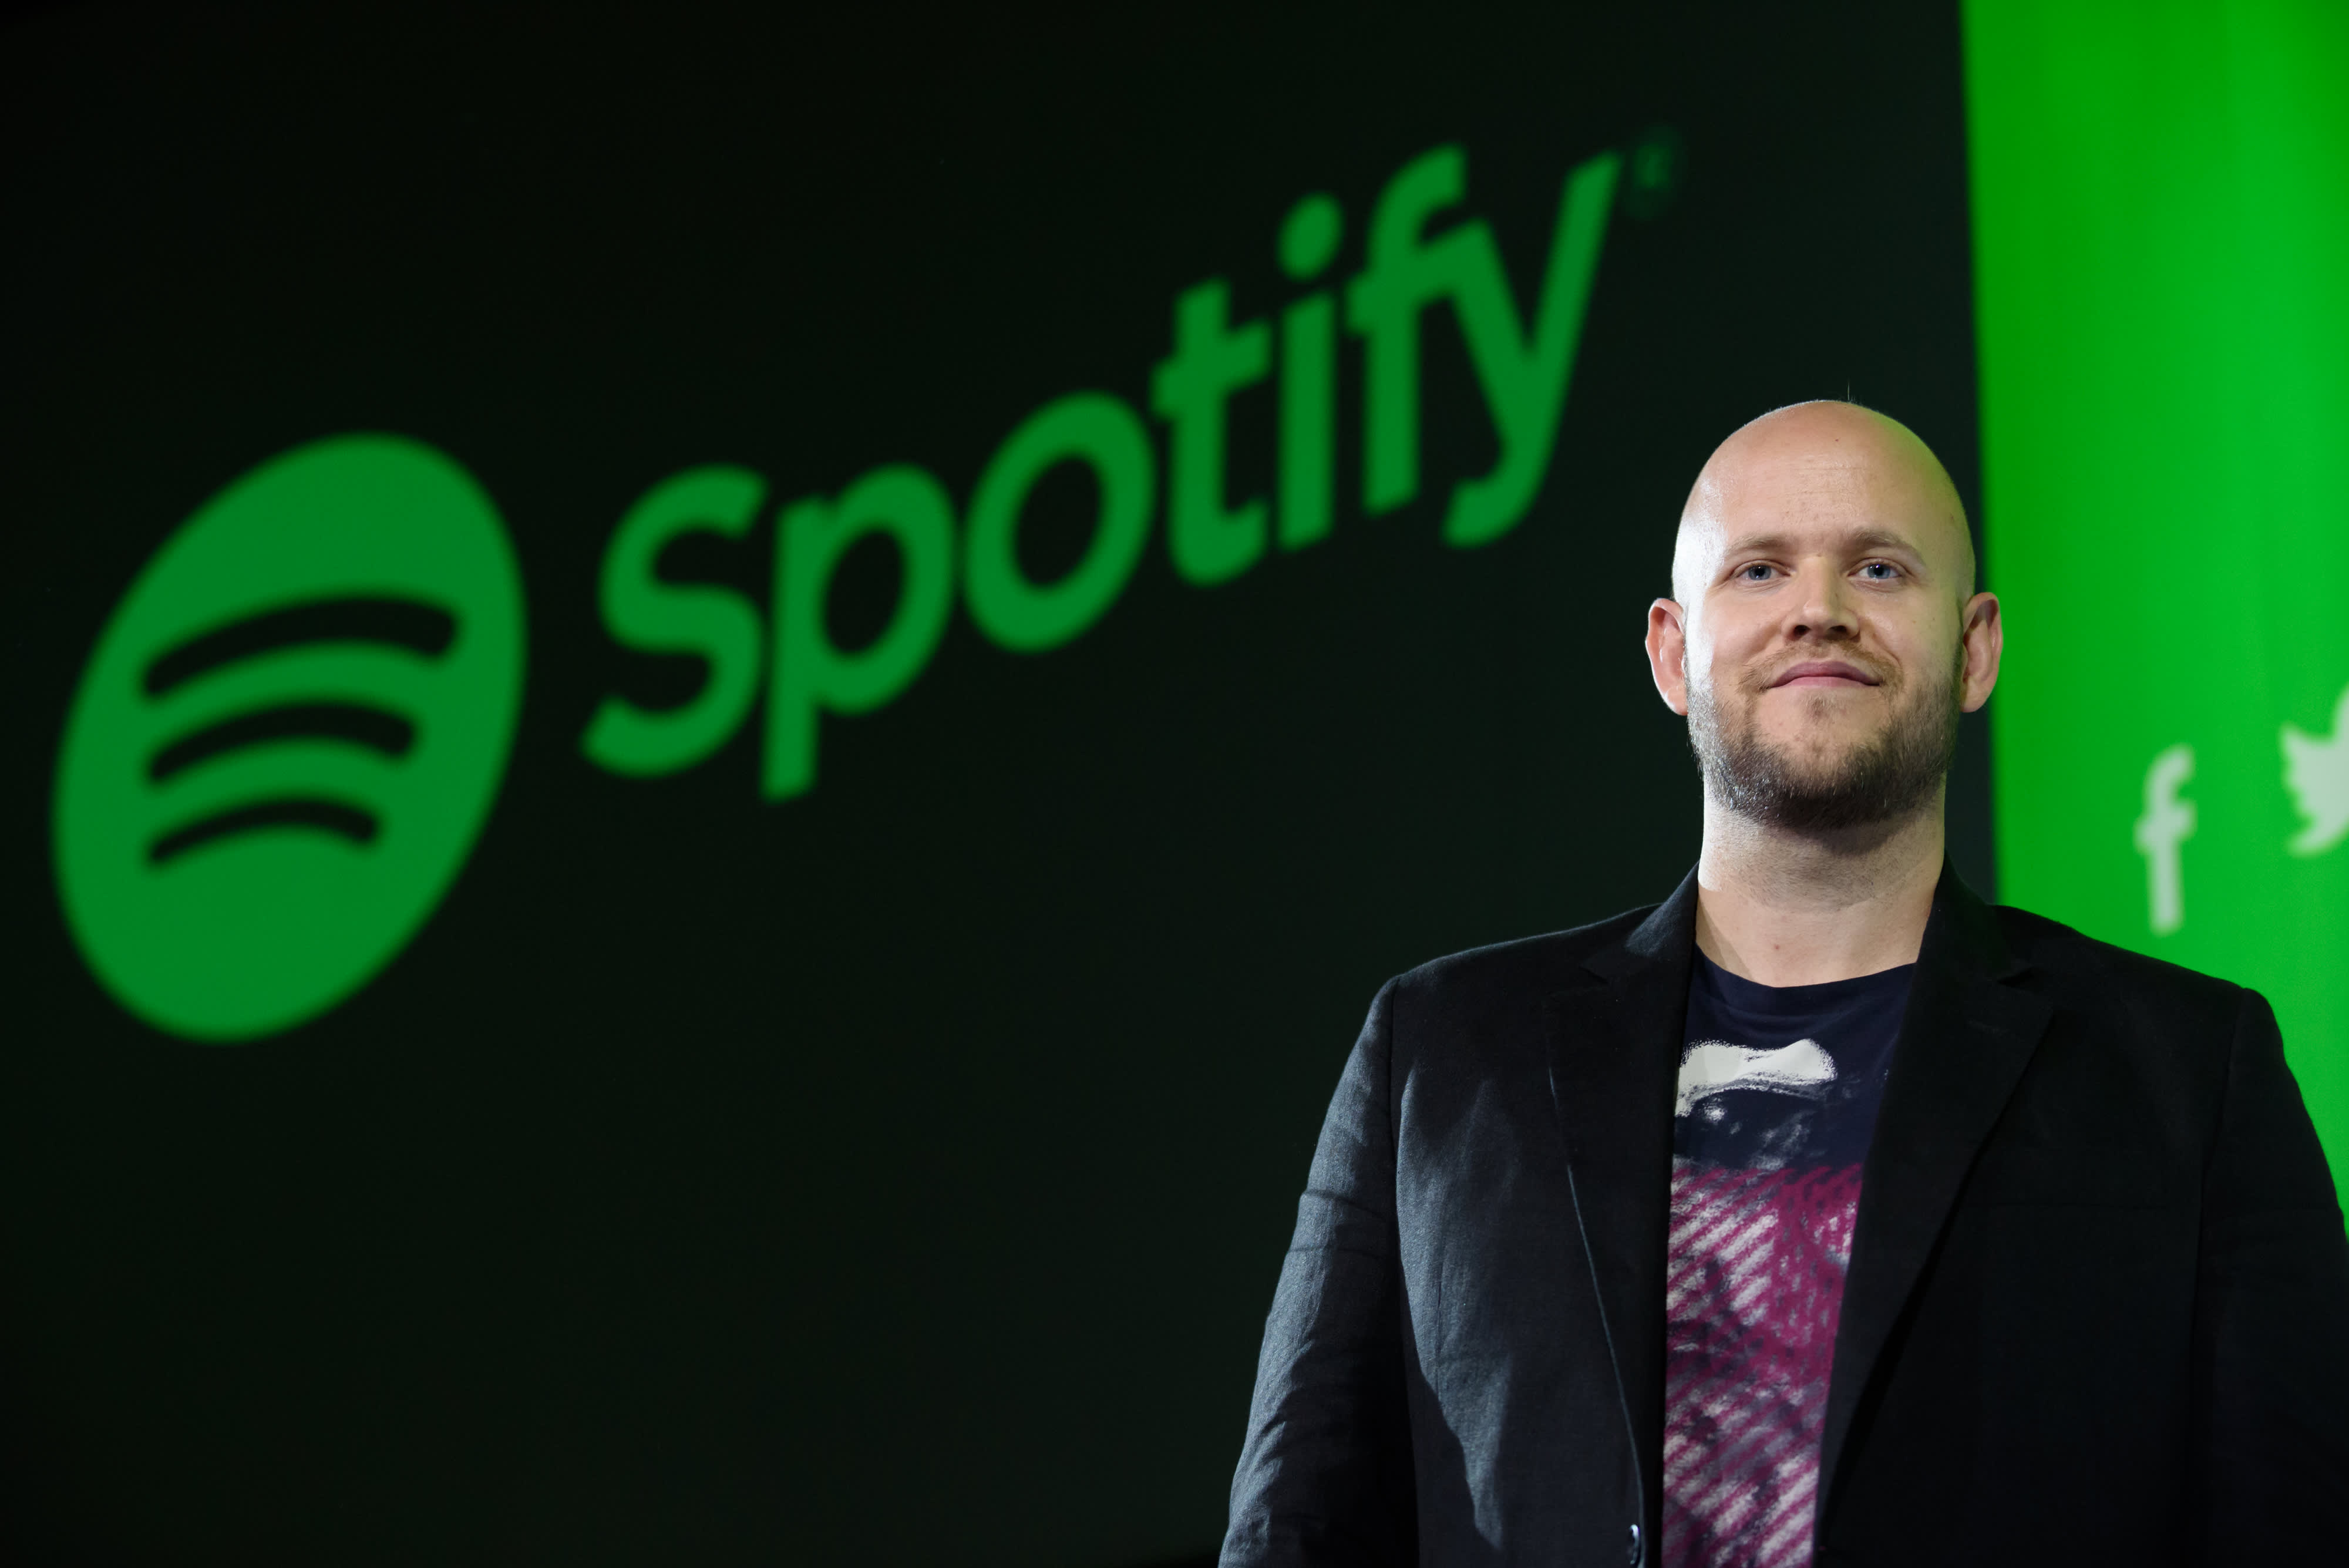 Spotify creator'very serious' about purchasing his favorite team, Arsenal, says he has secured funding thumbnail